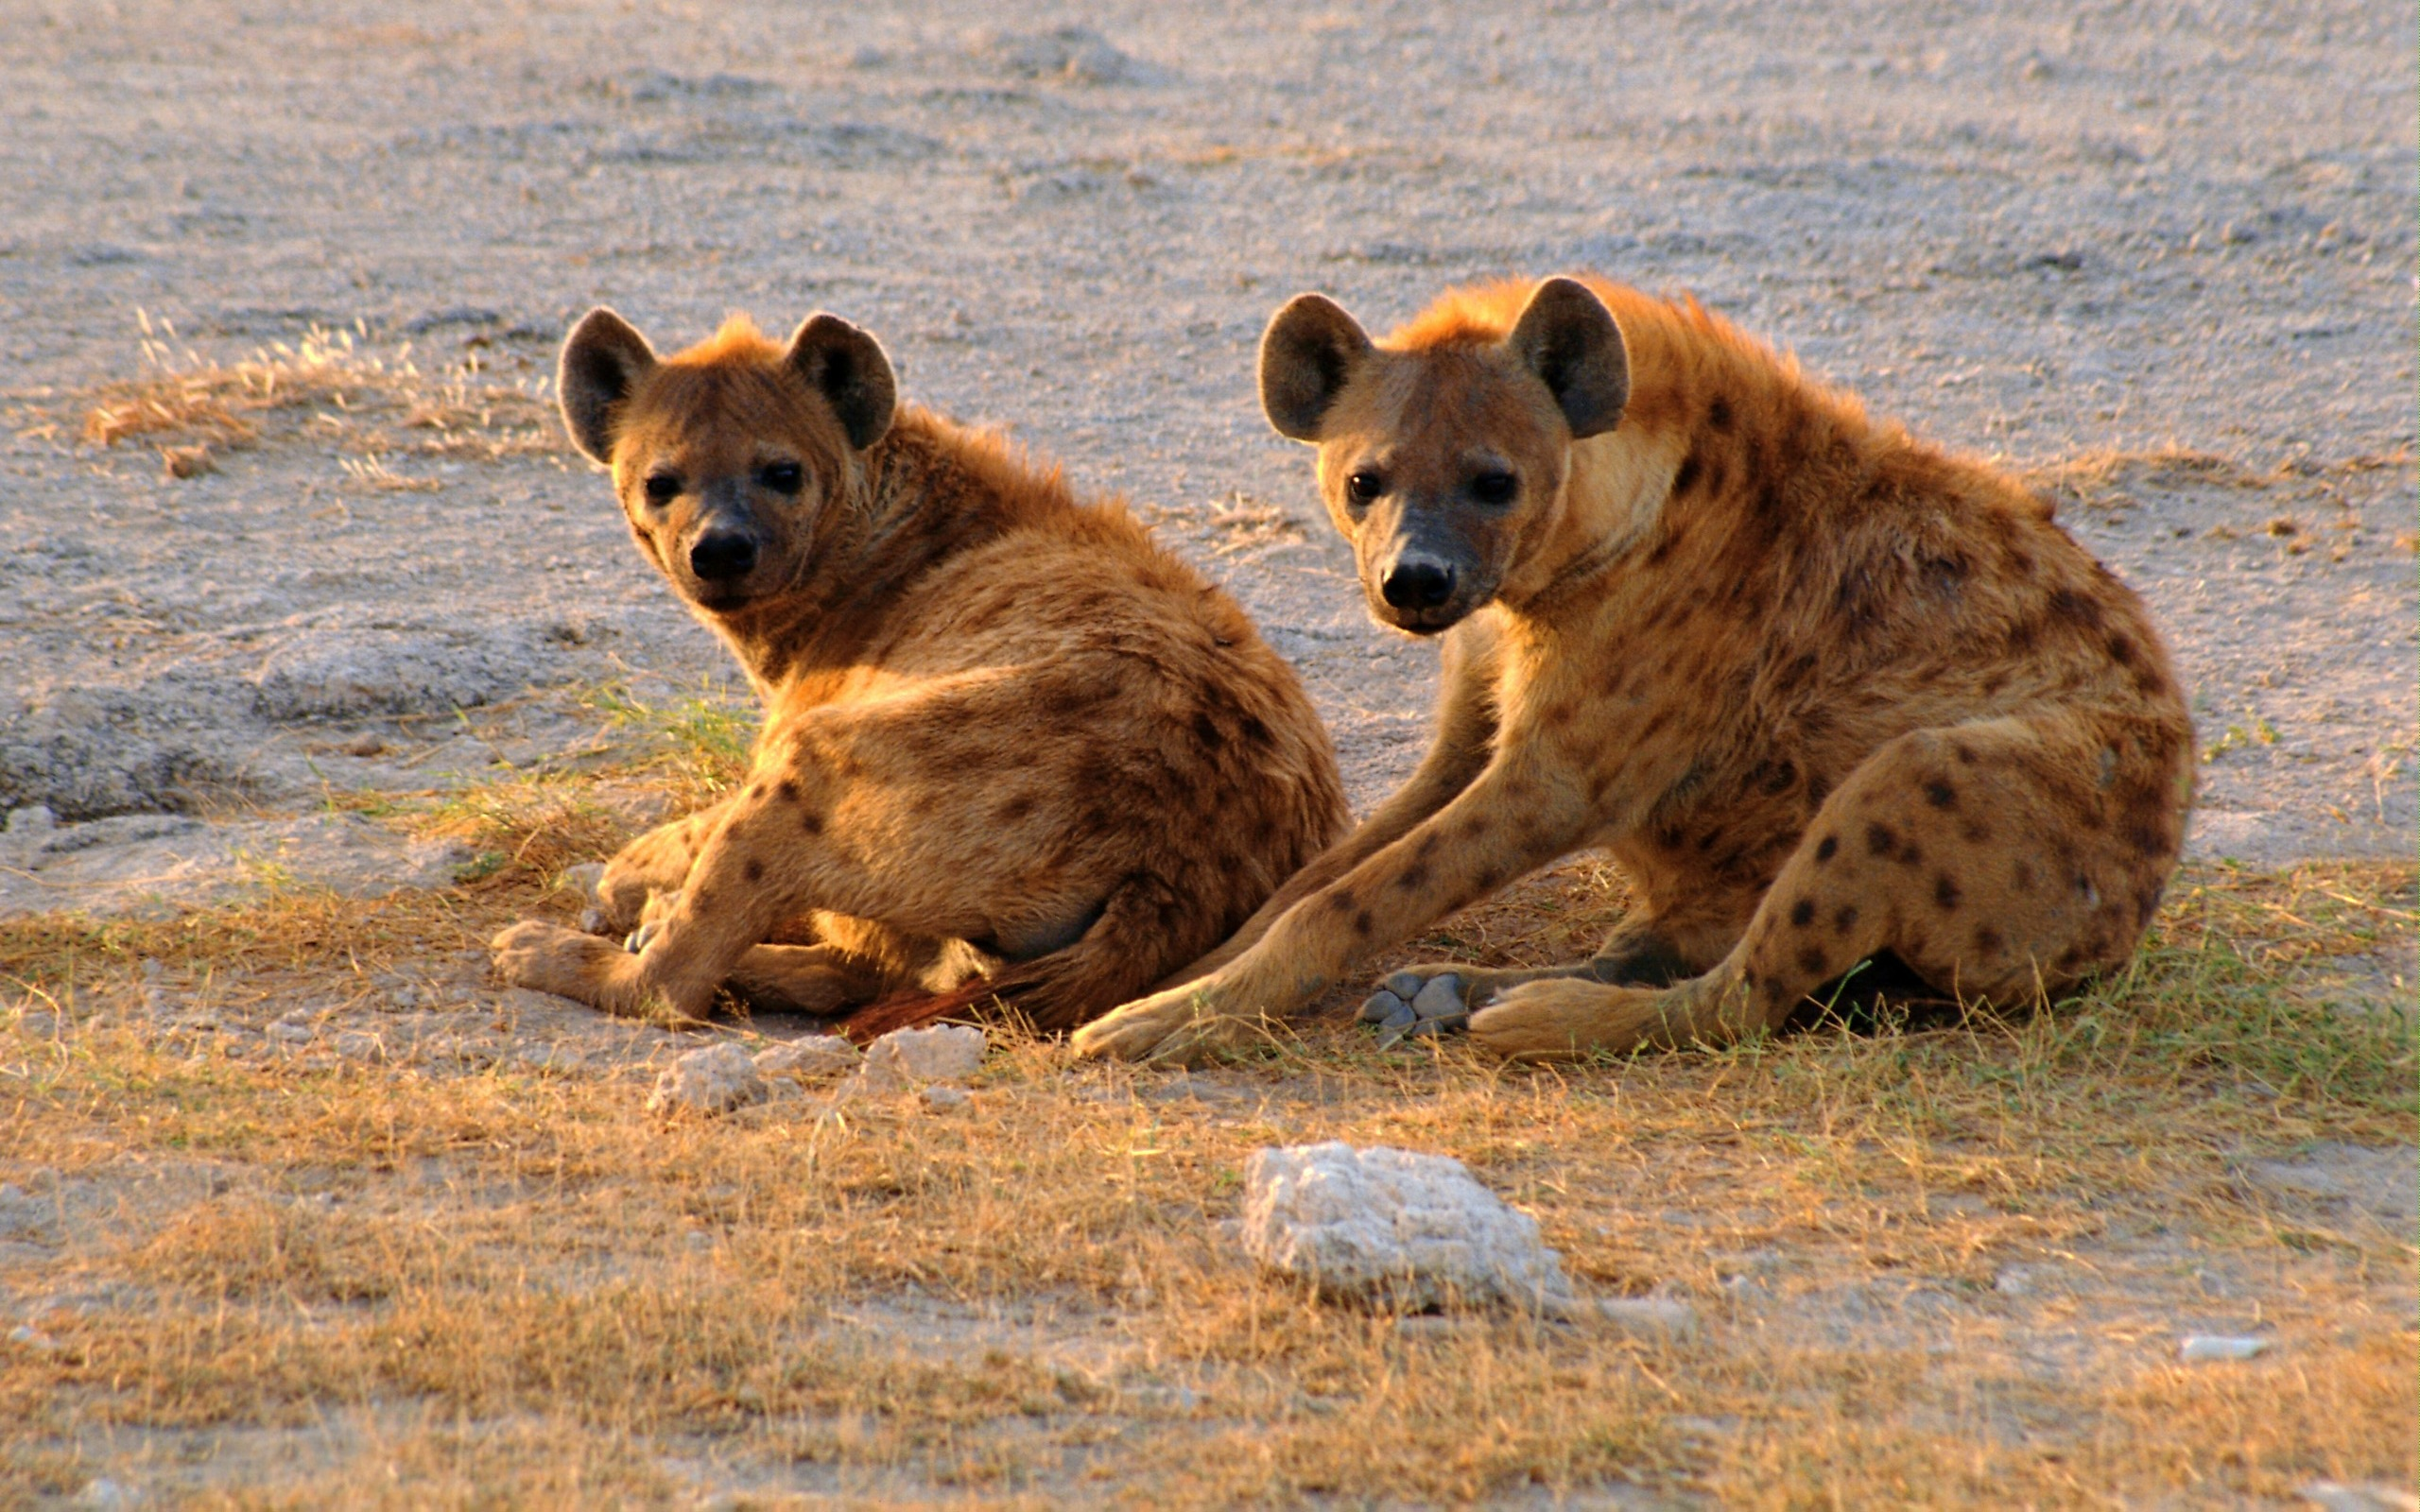 Hyena Full HD Wallpaper and Background Image | 2560x1600 ...